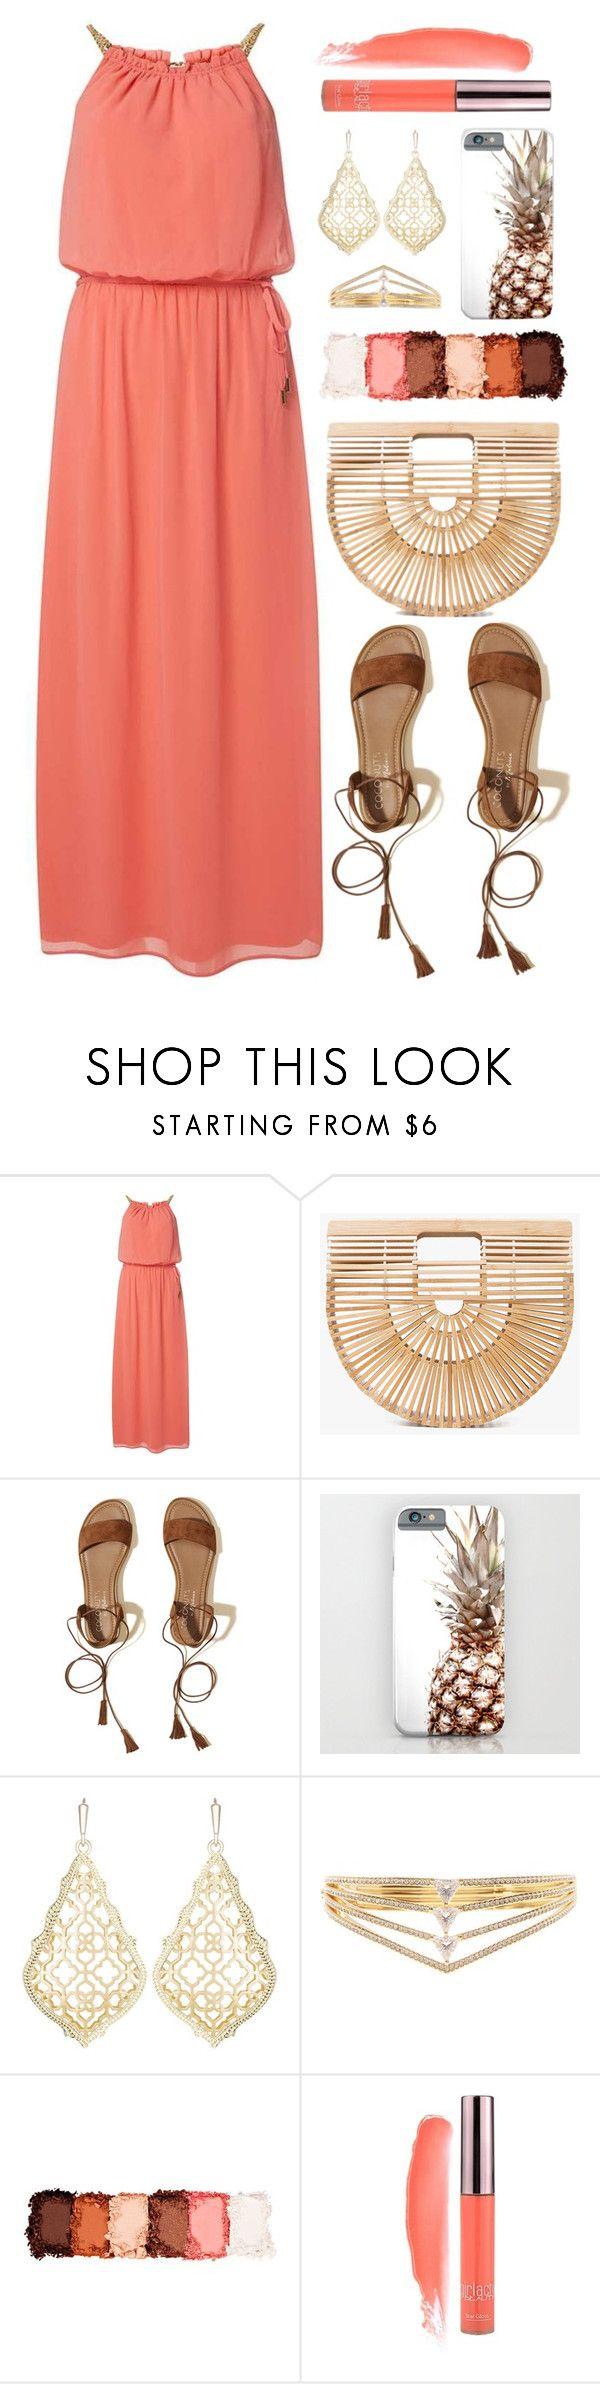 """""""OOTD - Coral Maxi Dress"""" by by-jwp ❤ liked on Polyvore featuring Dorothy Perkins, Cult Gaia, Hollister Co., Kendra Scott, Nadri and NYX"""